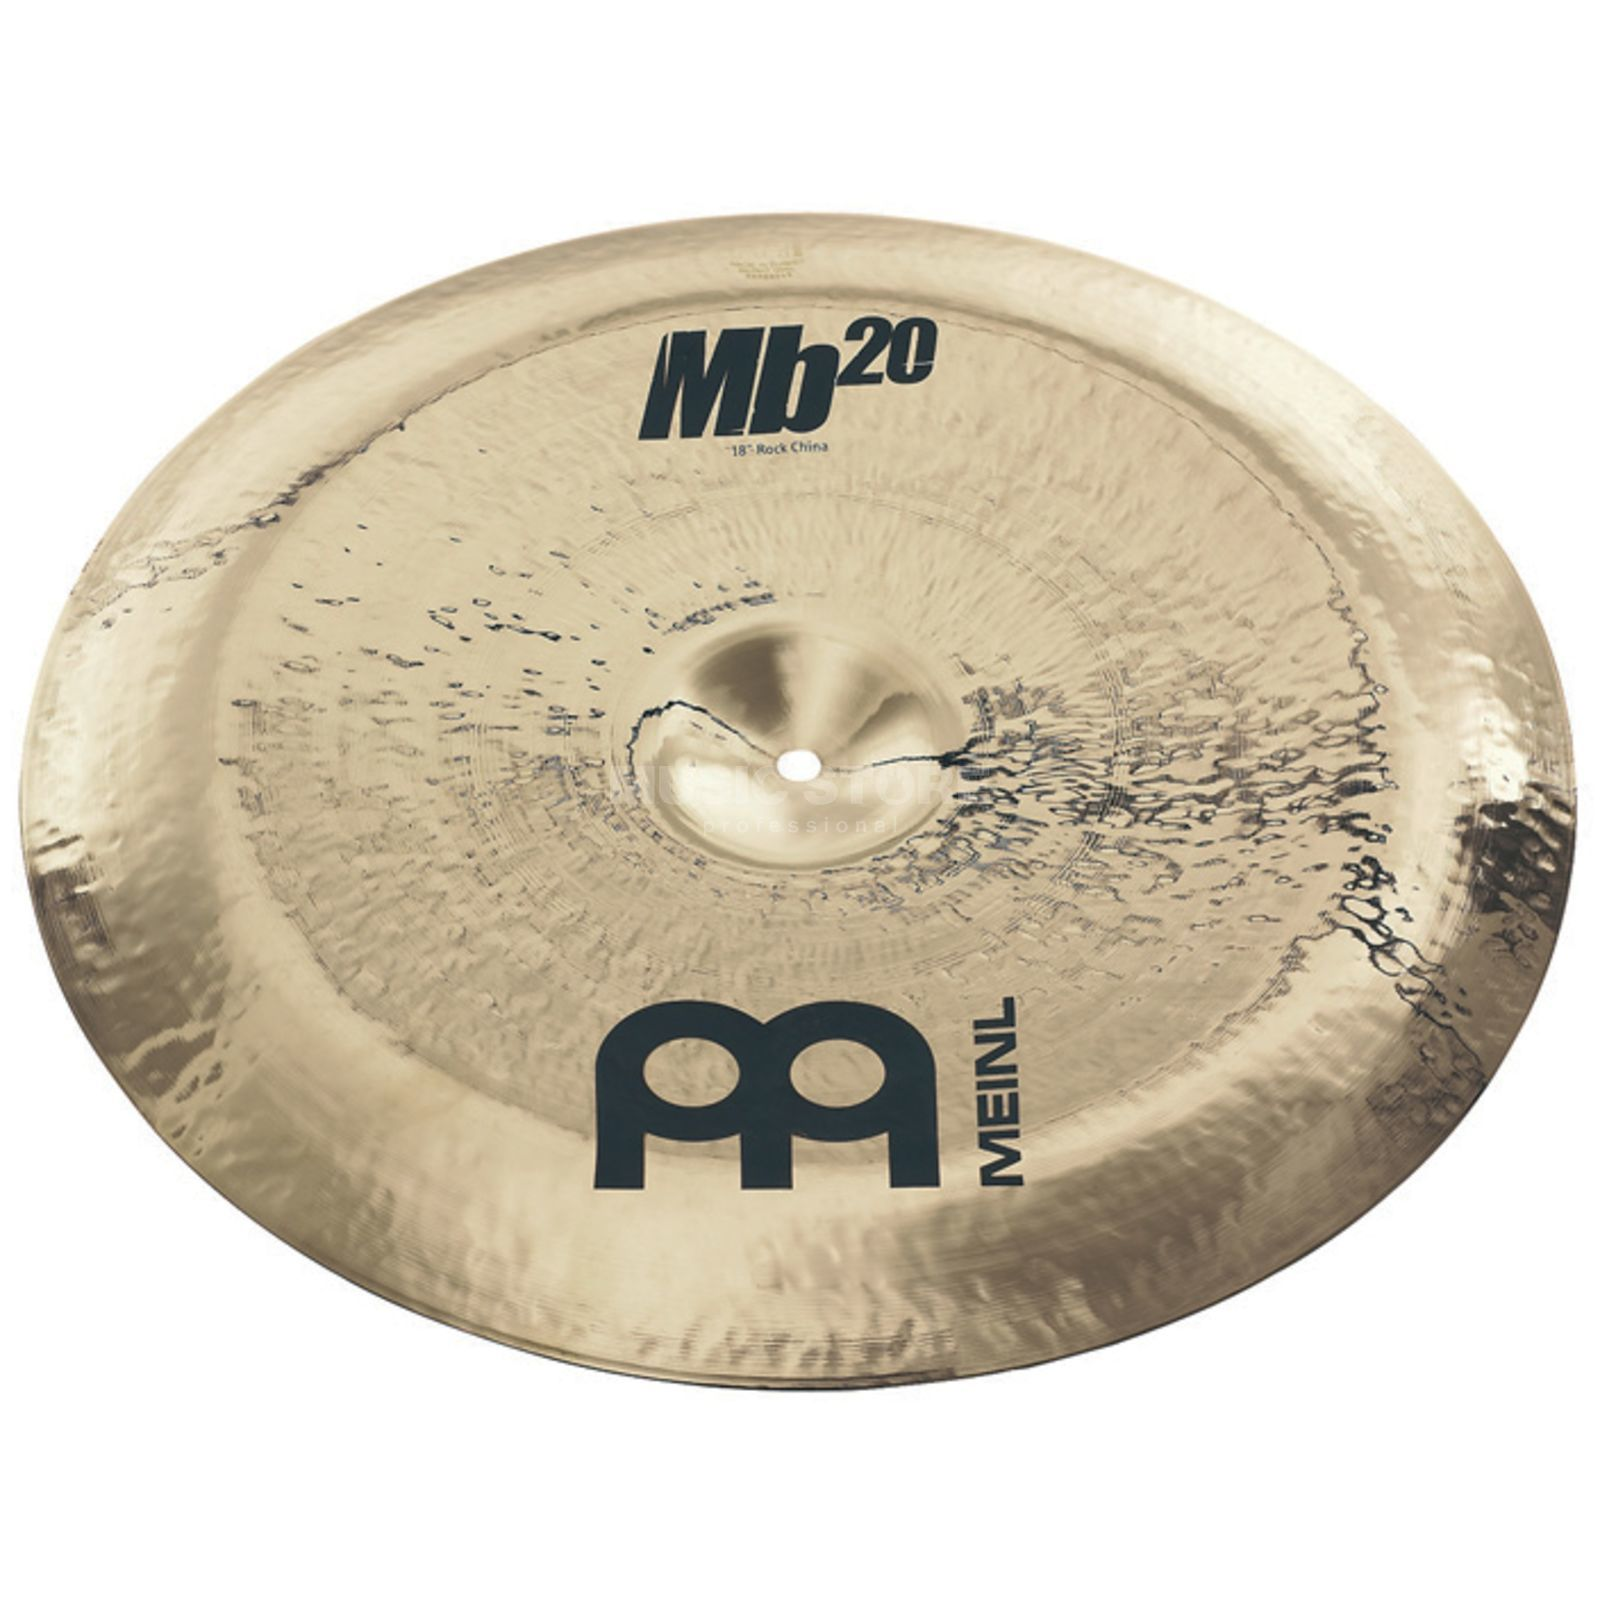 "Meinl MB20 Rock China 18"" MB20-18RCH-B, Brilliant Finish Produktbild"